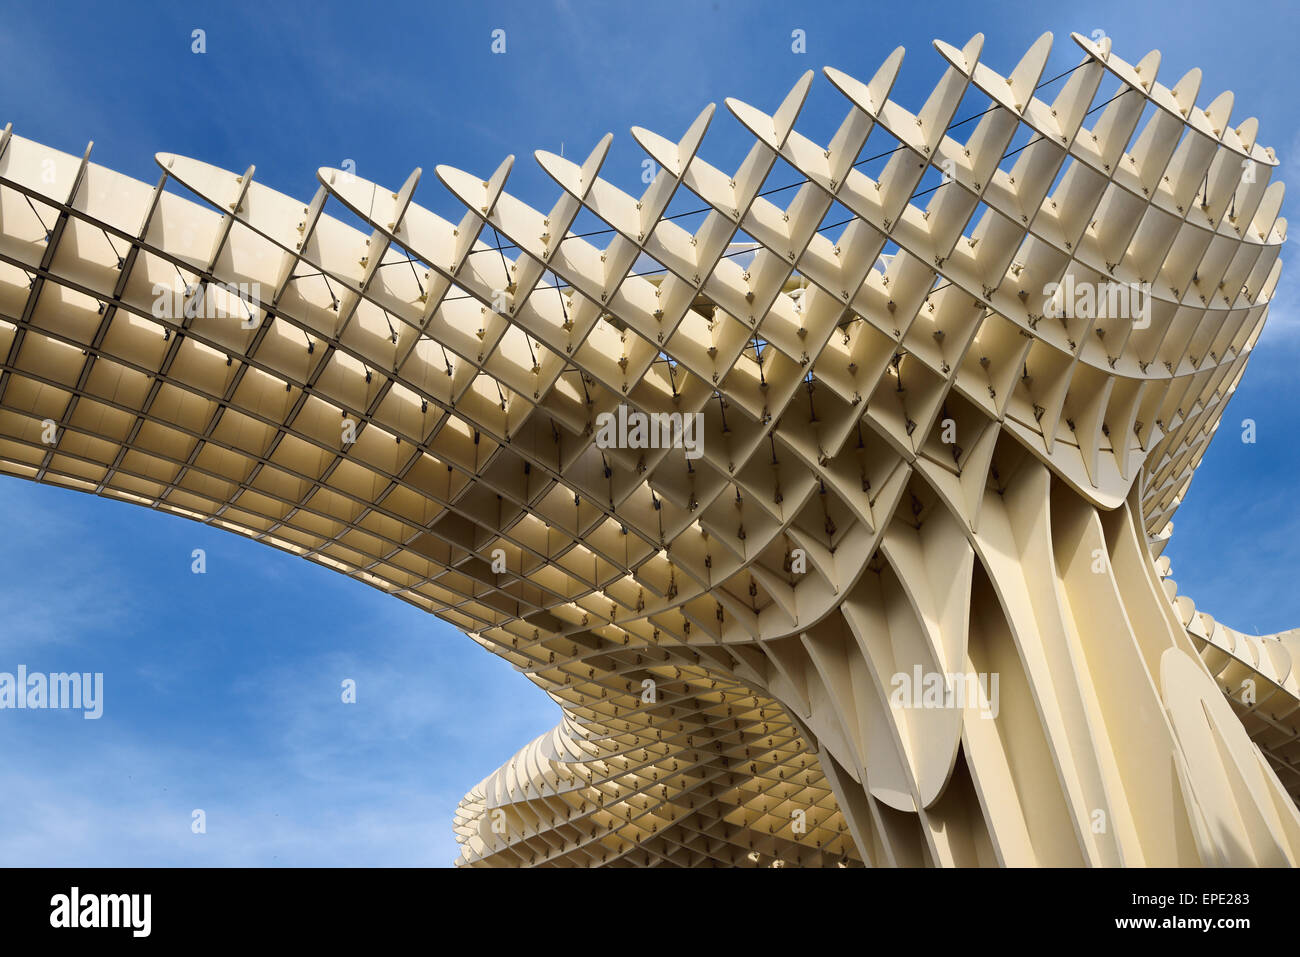 Modern abstract architecture of Metropol Parasol pod at Plaza of the Incarnation Seville Spain against sky - Stock Image